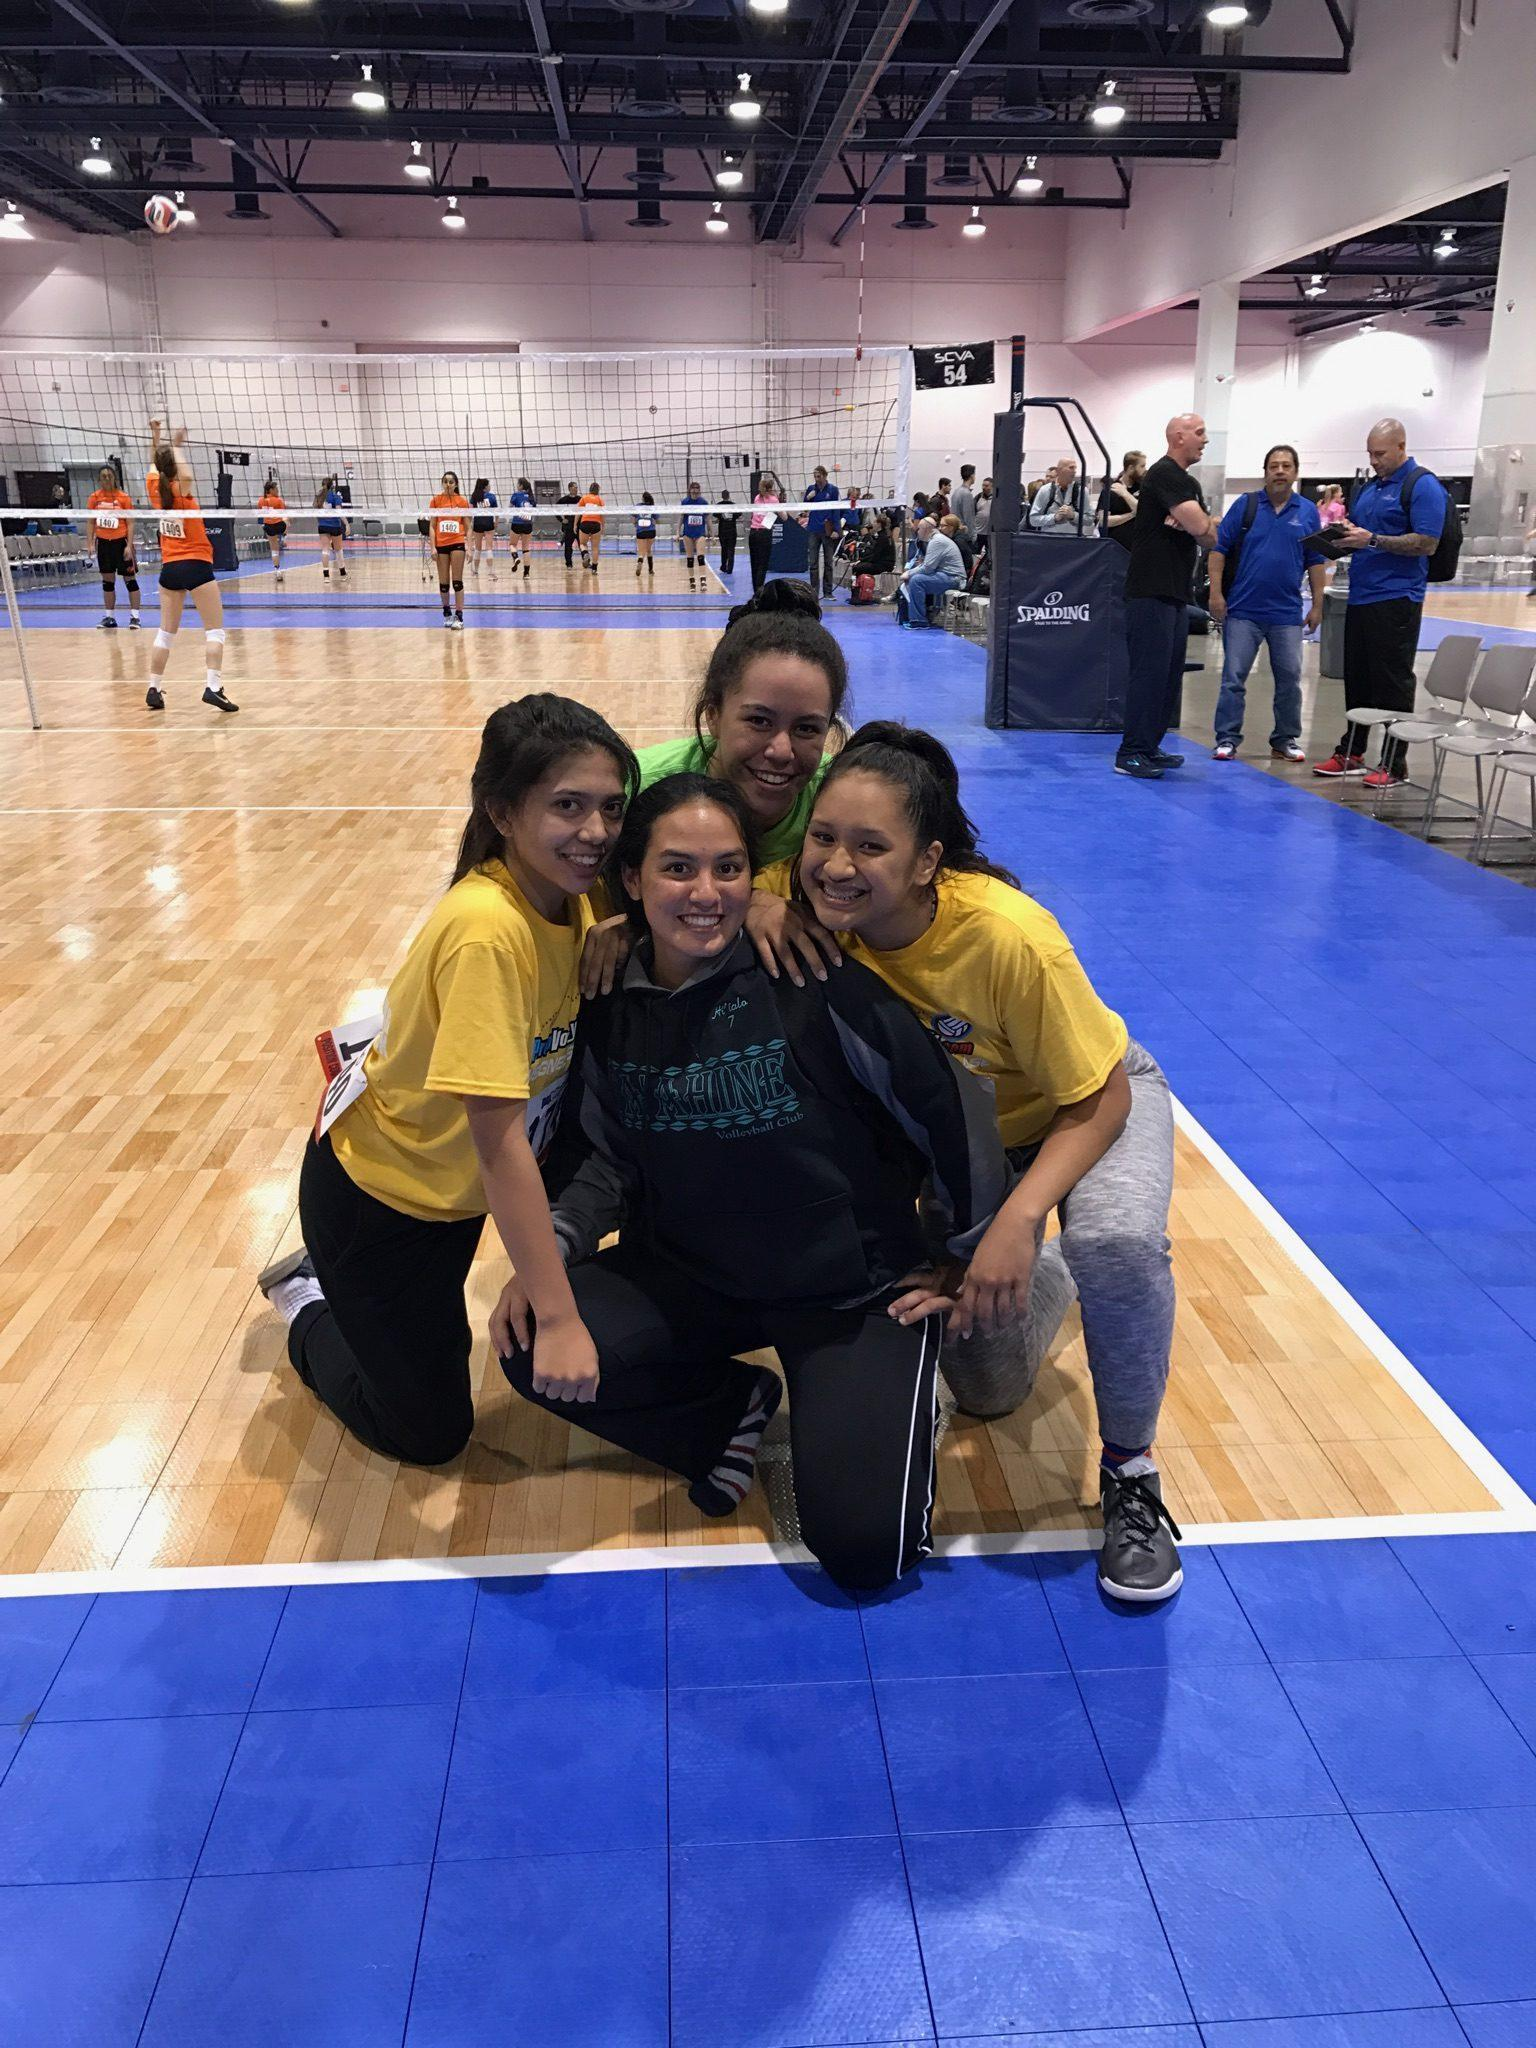 Juniors Chasry Lum-King, Angelyne Loiselle, Hi'ialo Apo and Tate Lutu ready to relax after a long day of games. Photo courtesy of Hi'ialo Apo.